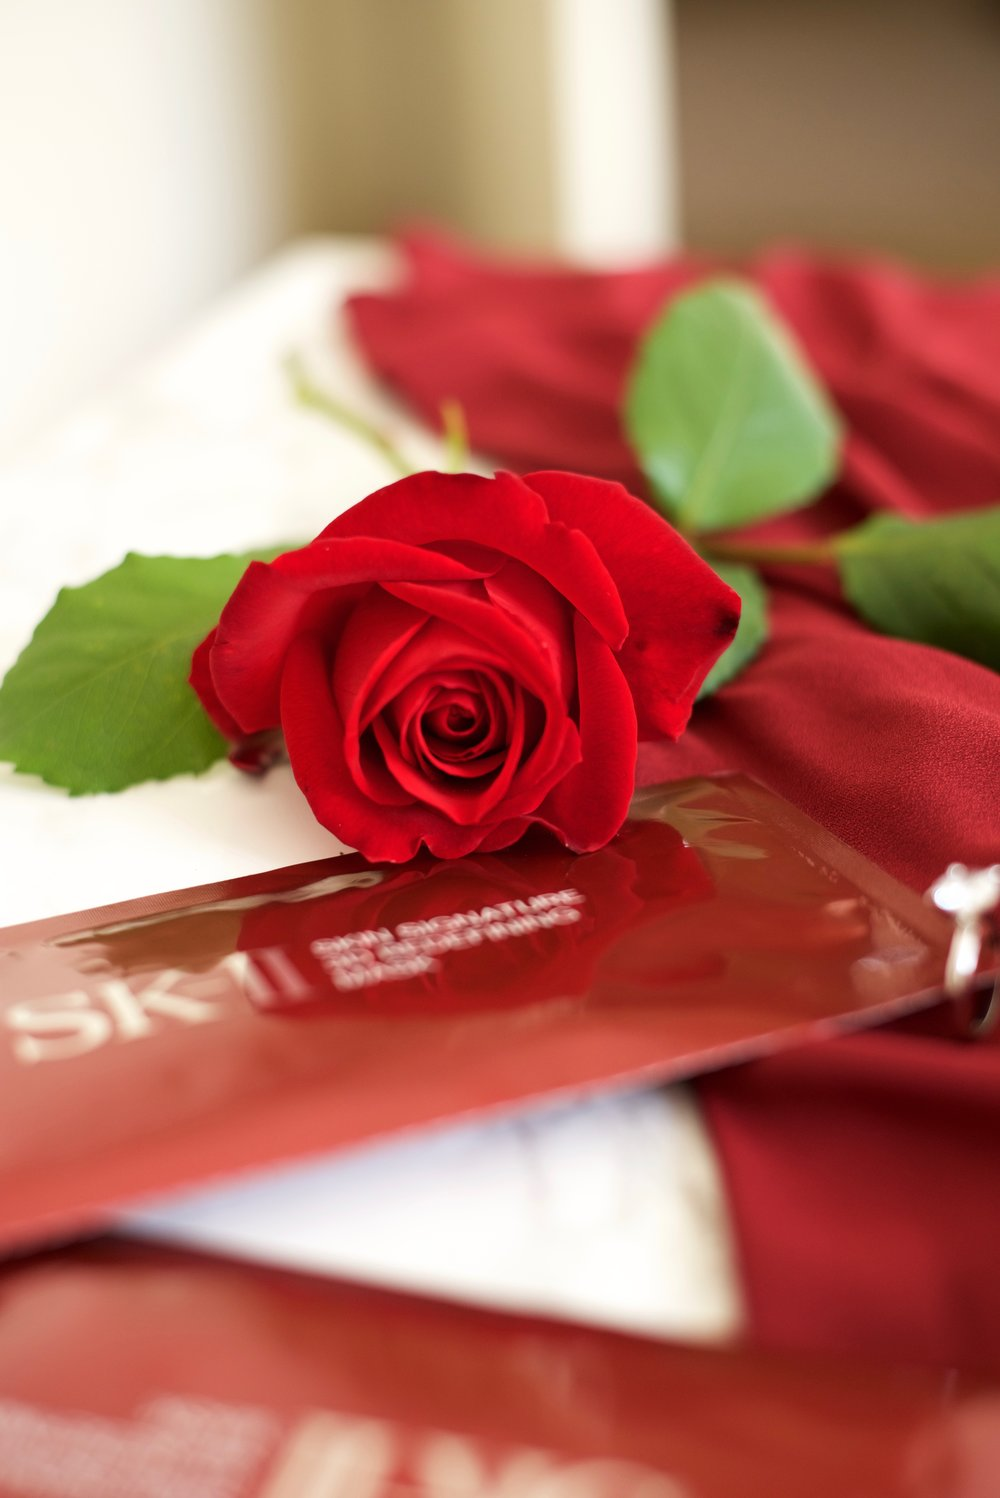 SK-II-Skin-Signature-3D-Refining-Sheet-Mask-Review_DSC_2428.jpg